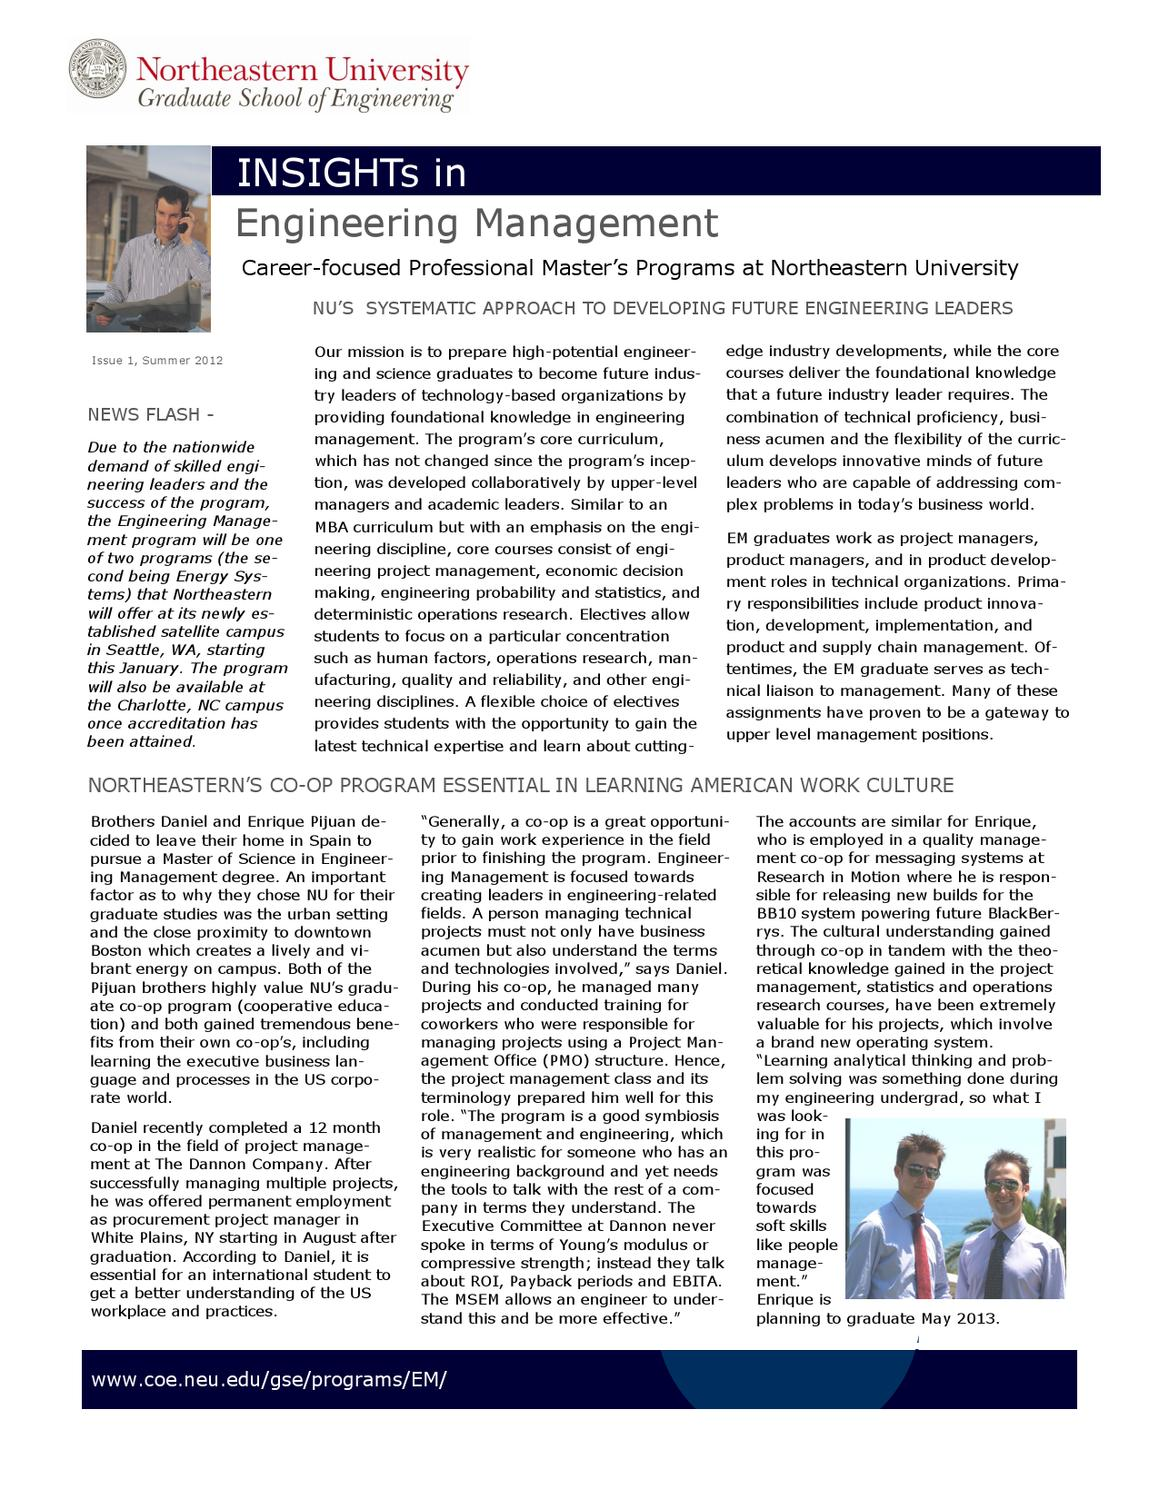 Engineering Management July 2012 Newsletter By Sara Wadia Fascetti